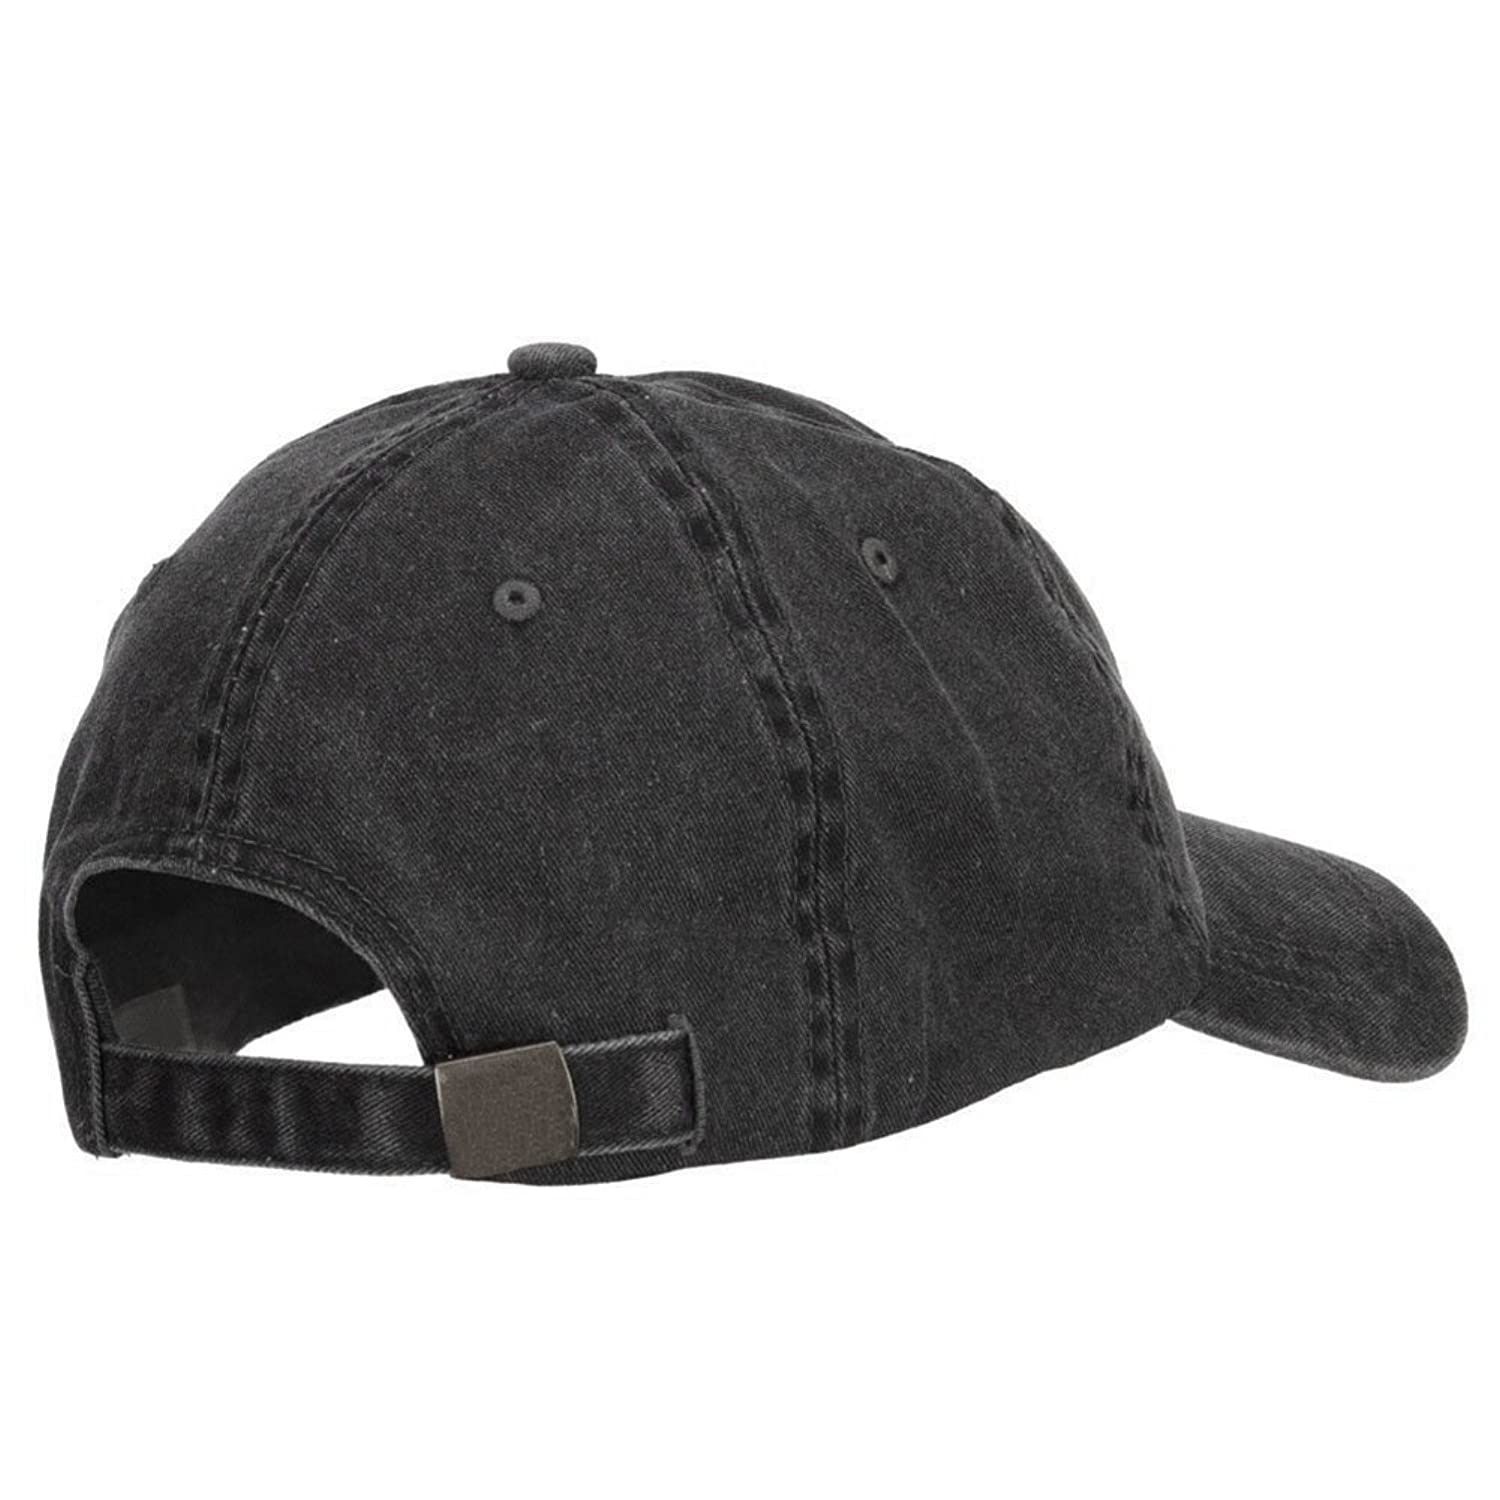 Urin charlie-hustle-alt-standard-weight Washed Cap Black at Amazon Mens Clothing store: